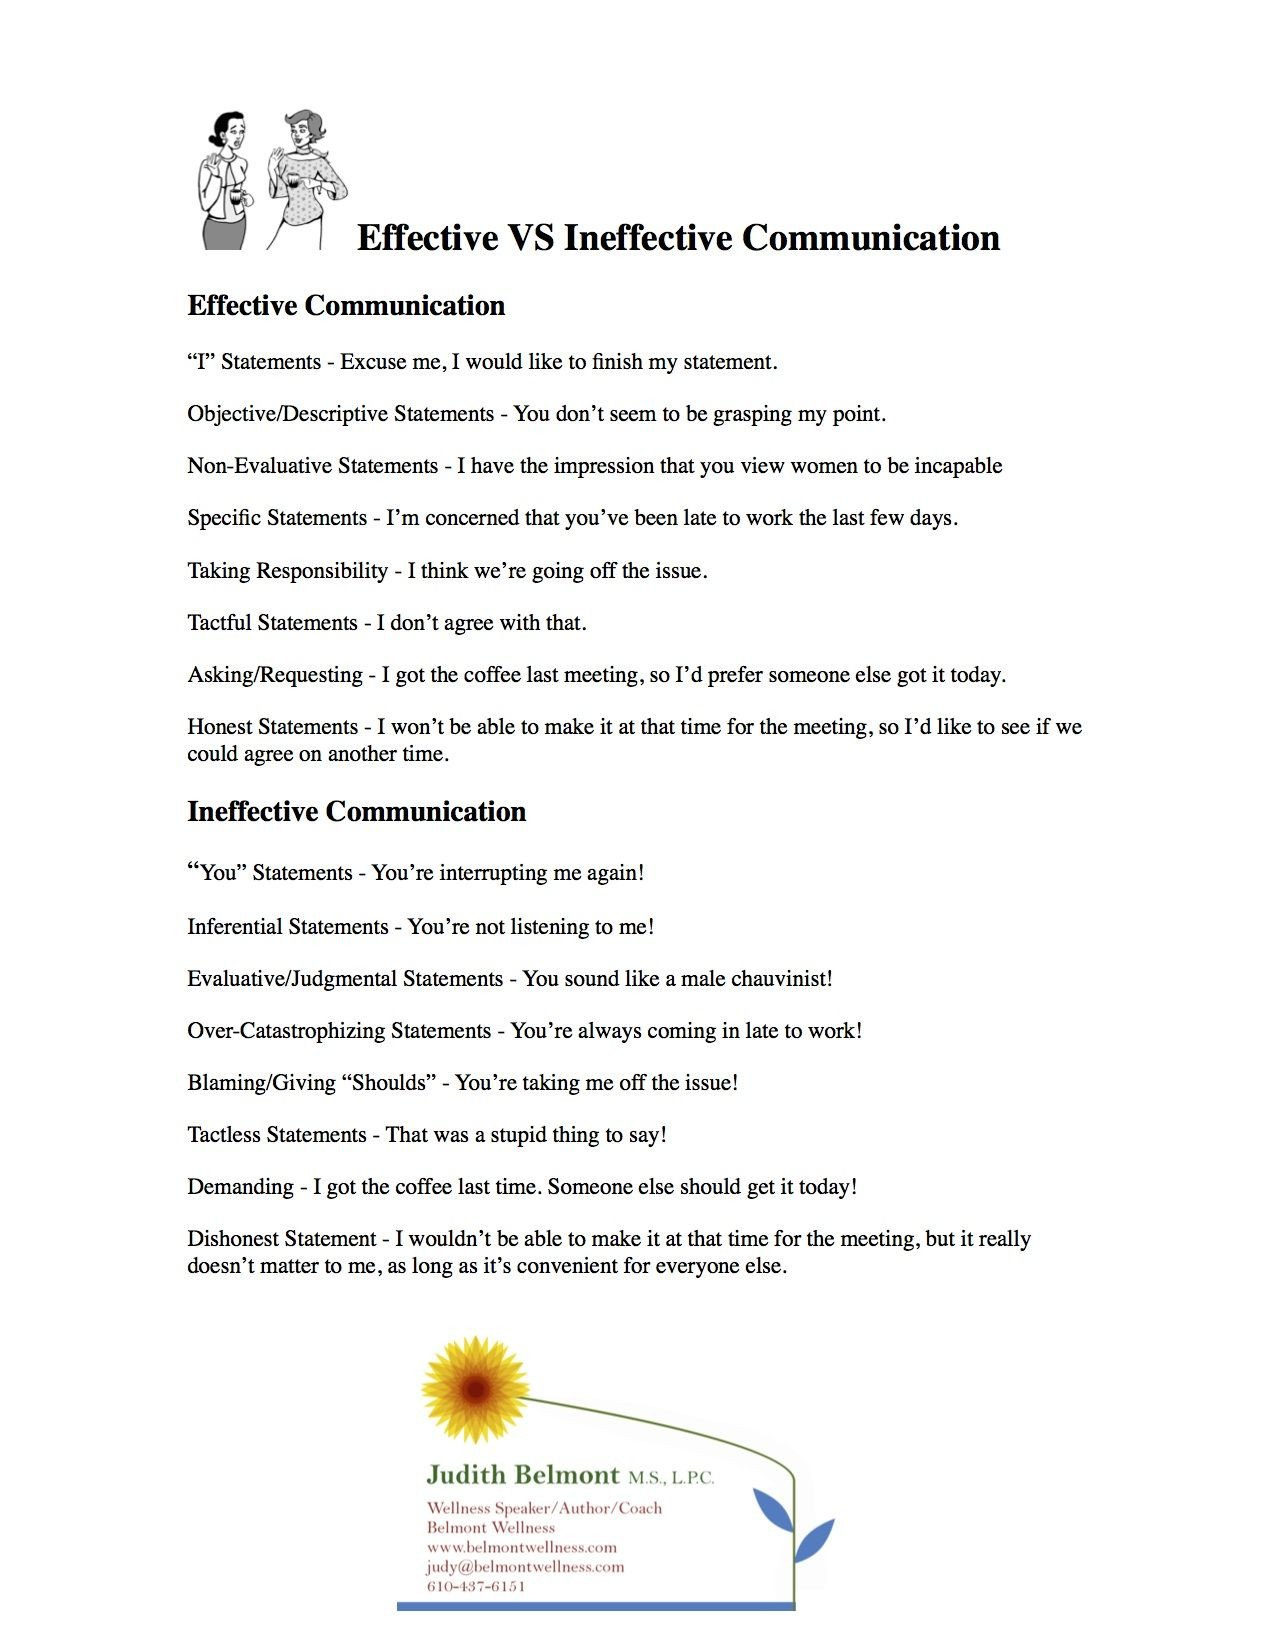 Effective Communication Worksheets Adults Psychoeducational Handouts Quizzes and Group Activities